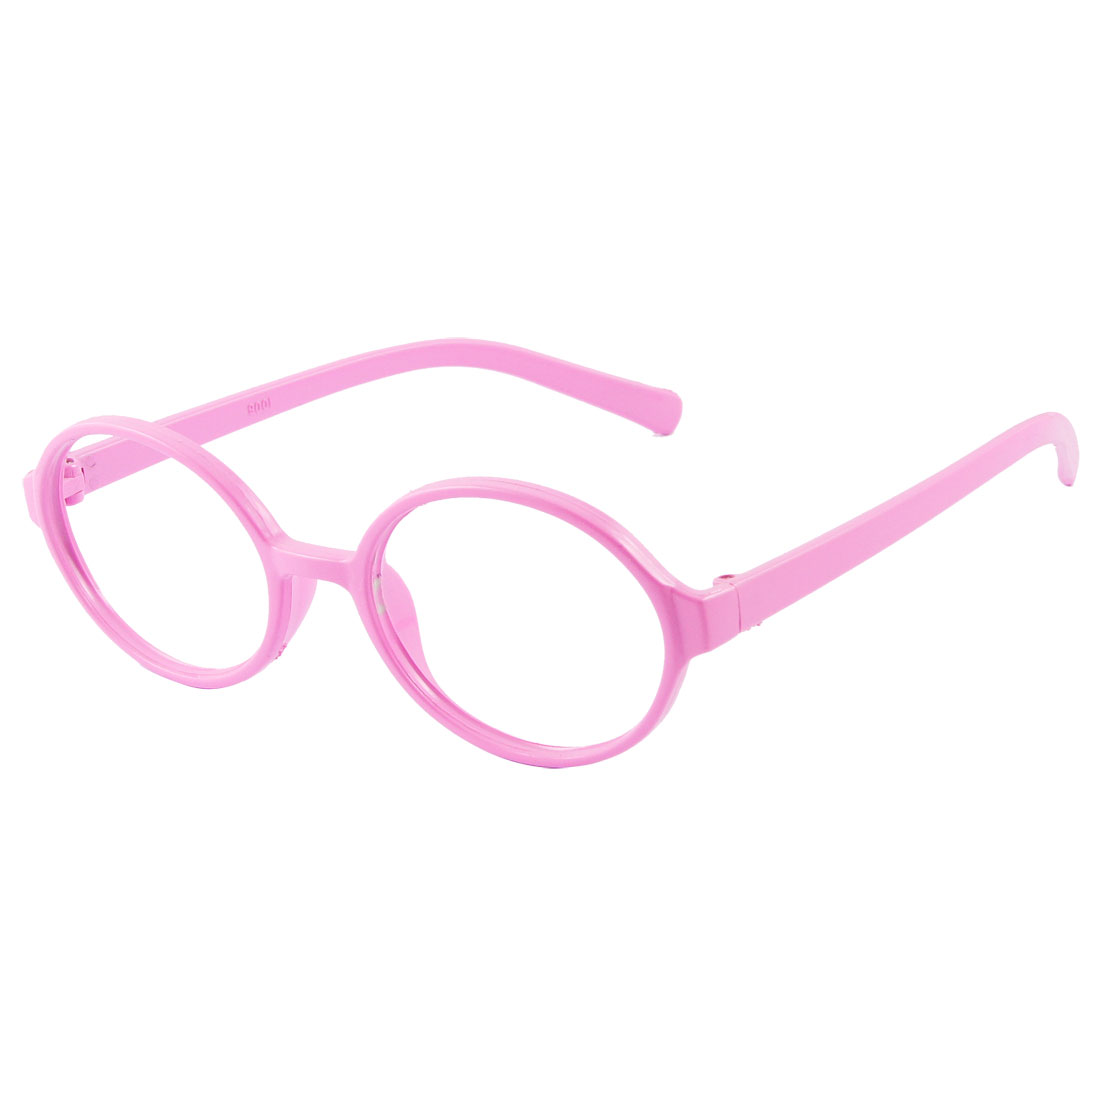 Ladies Pink Plastic Full Rims Round Eyeglasses Frame